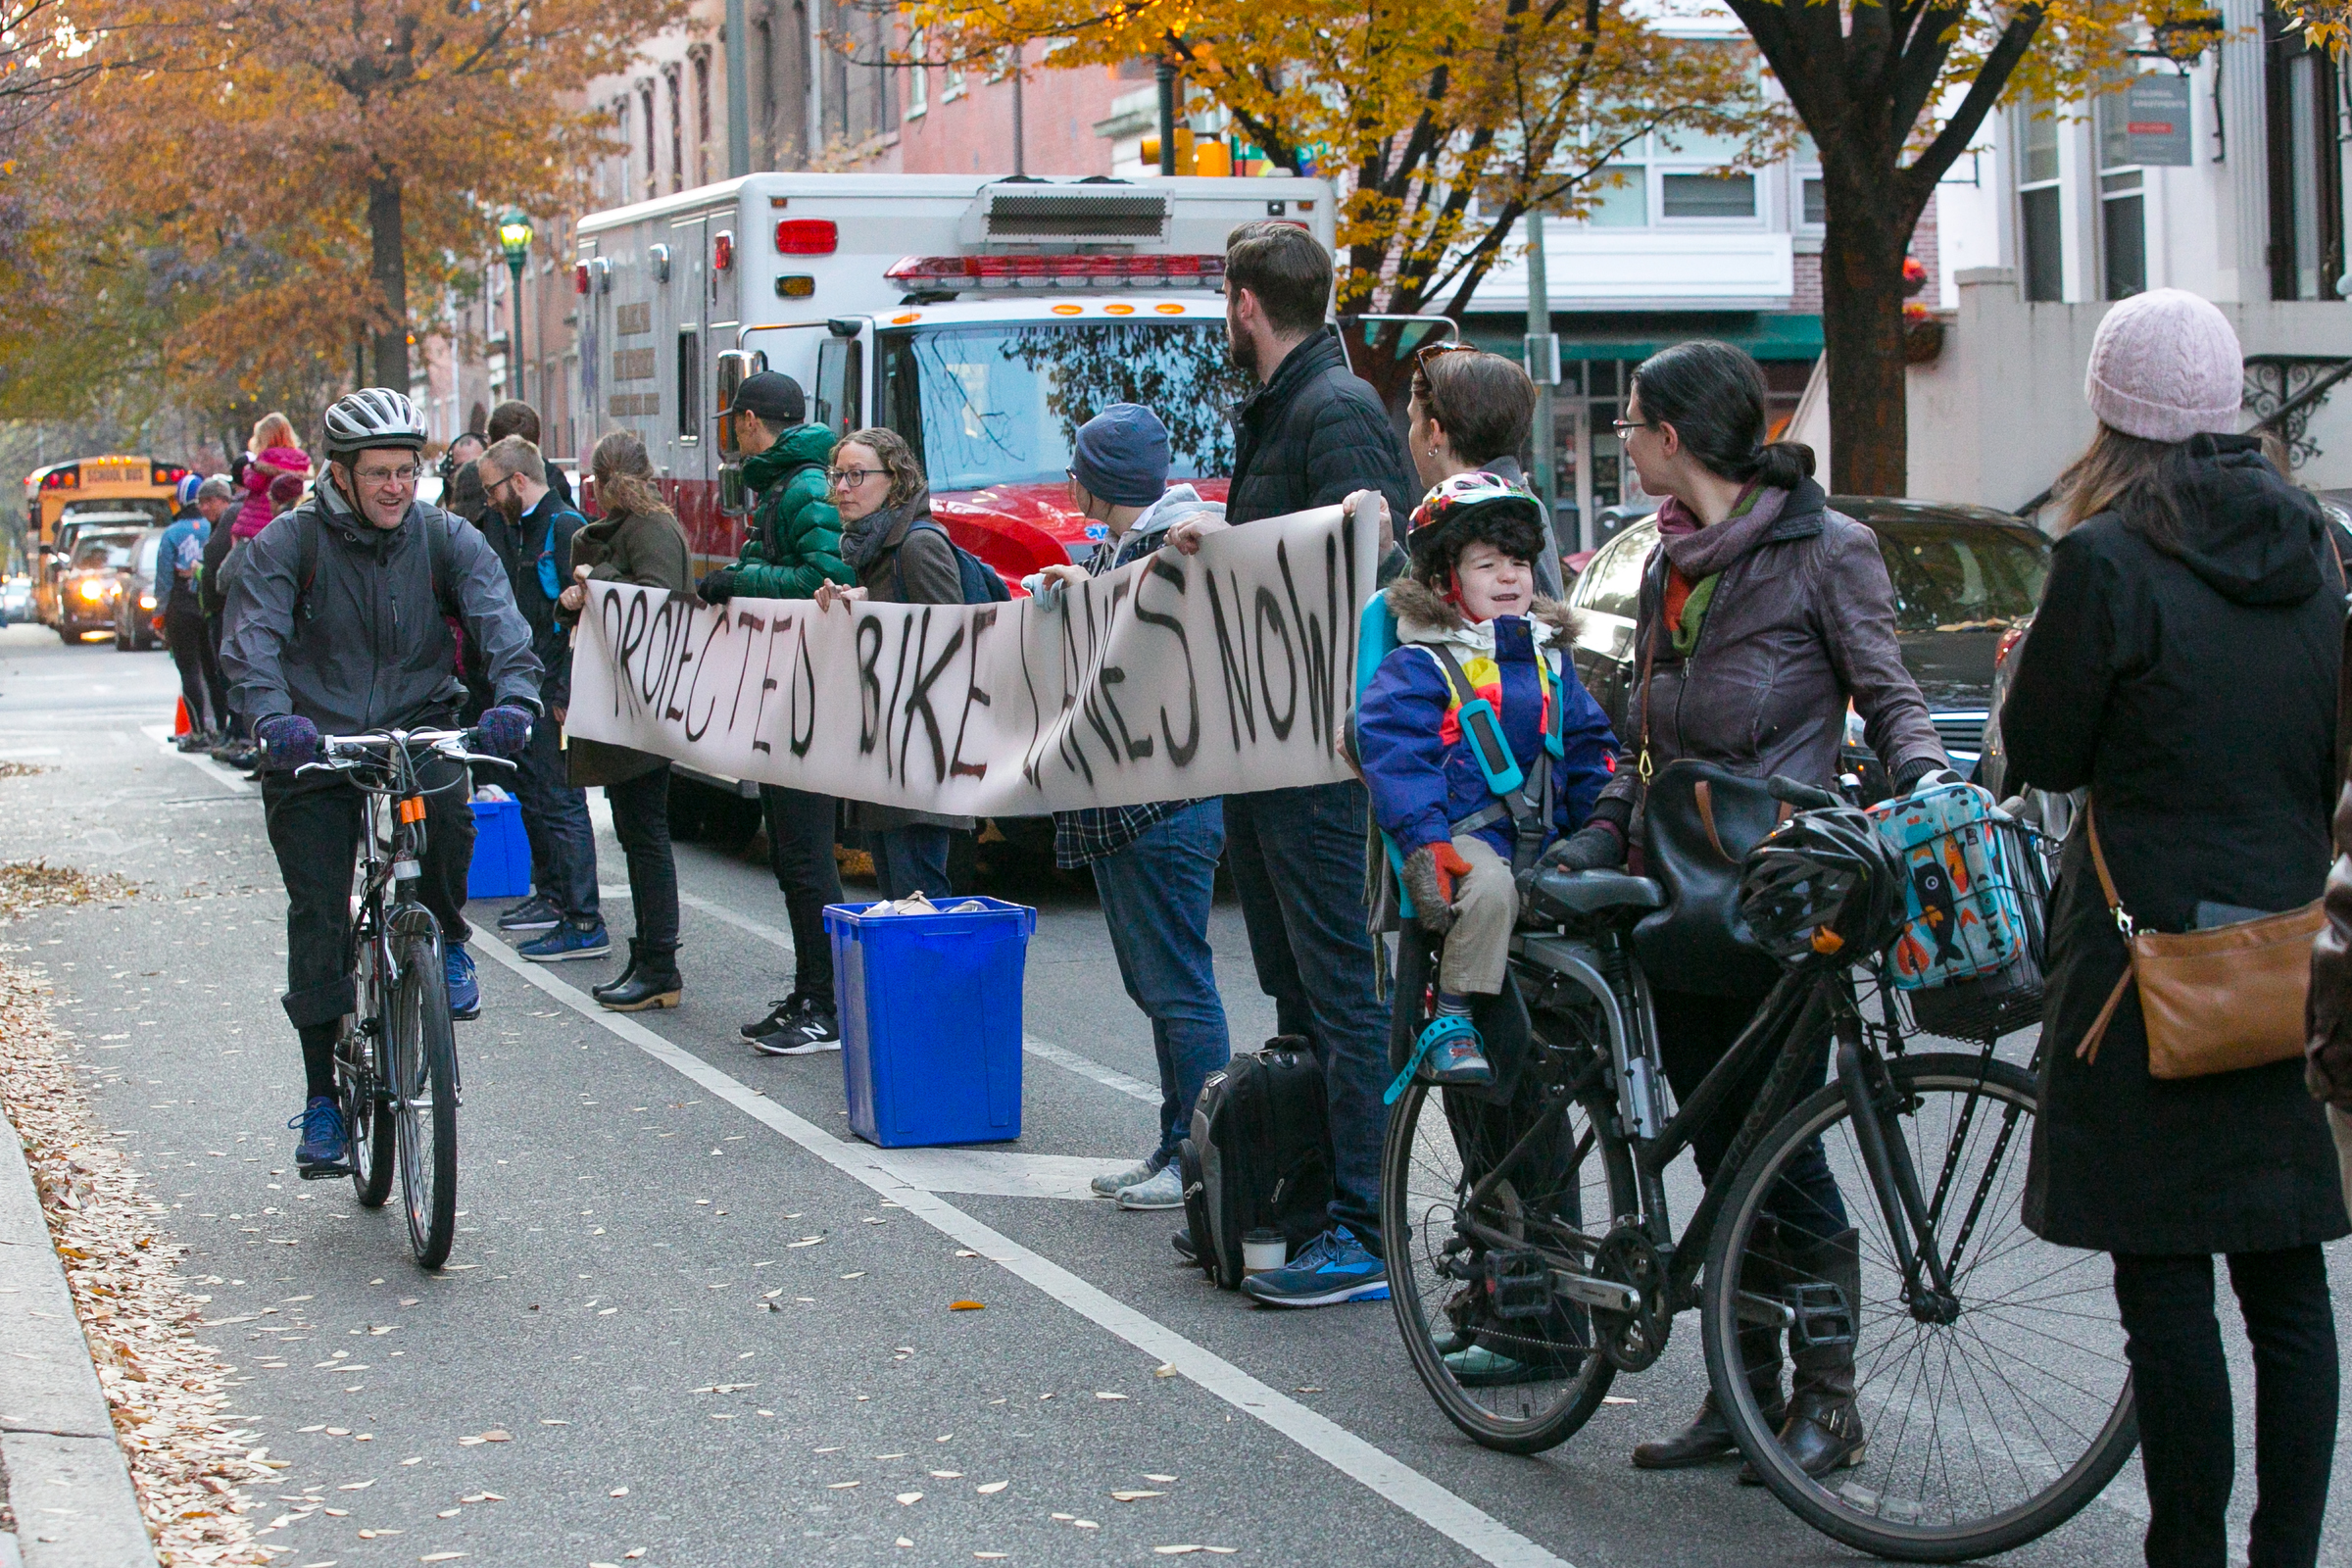 Protestors advocate for safer bike lanes by lining up at 11th and Spruce Streets, in Philadelphia, Wednesday, Nov. 29, 2017.